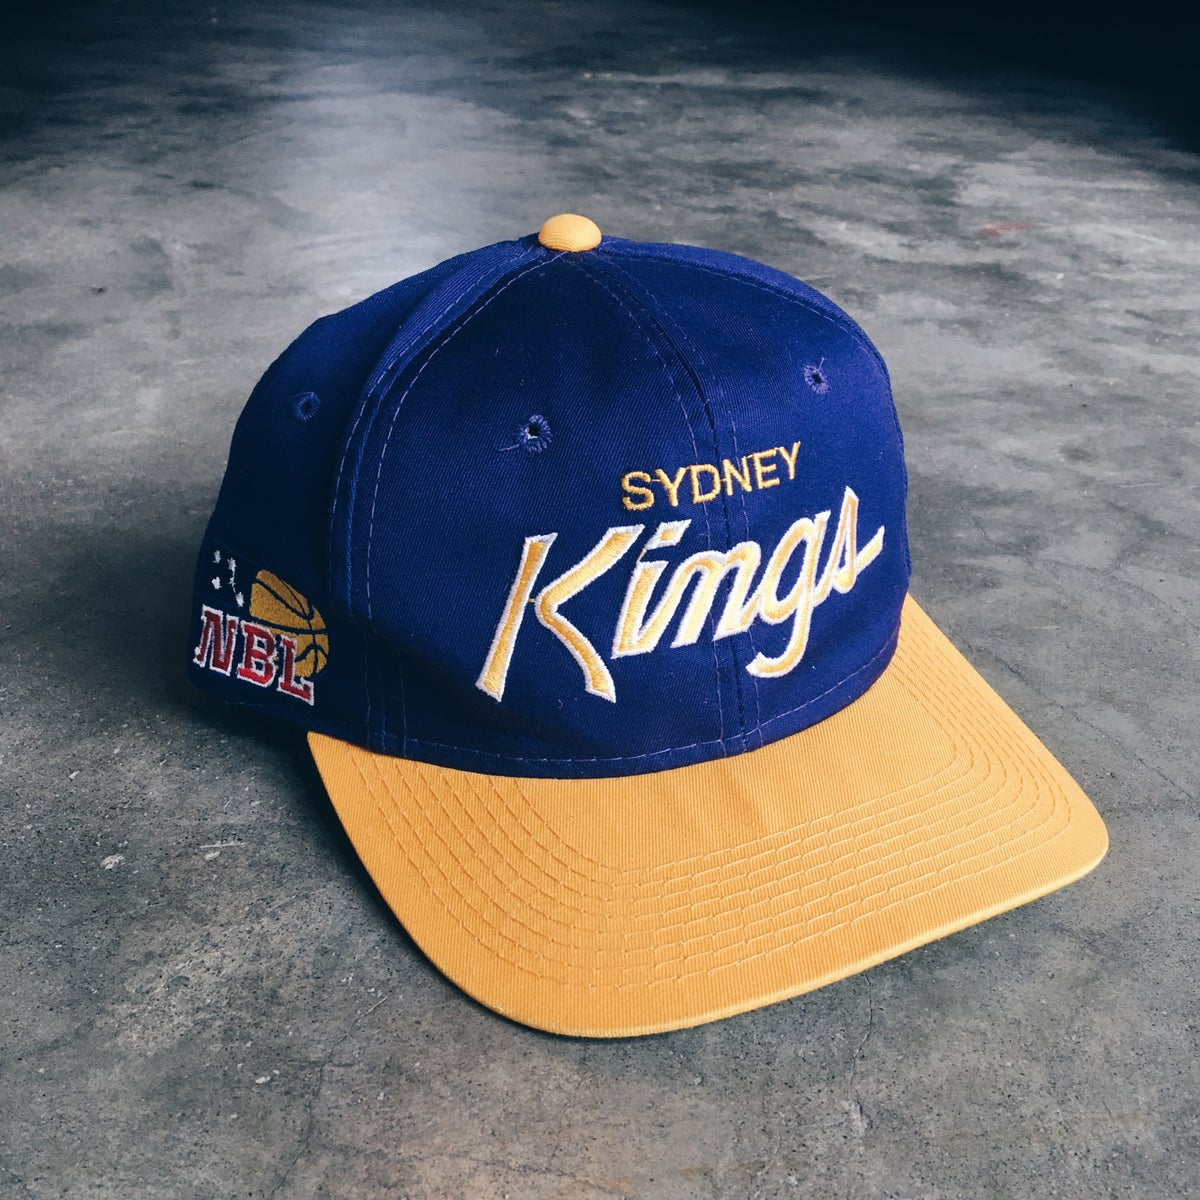 Image of Original 90's Sports Specialties Sydney Kong's Snapback Hat.